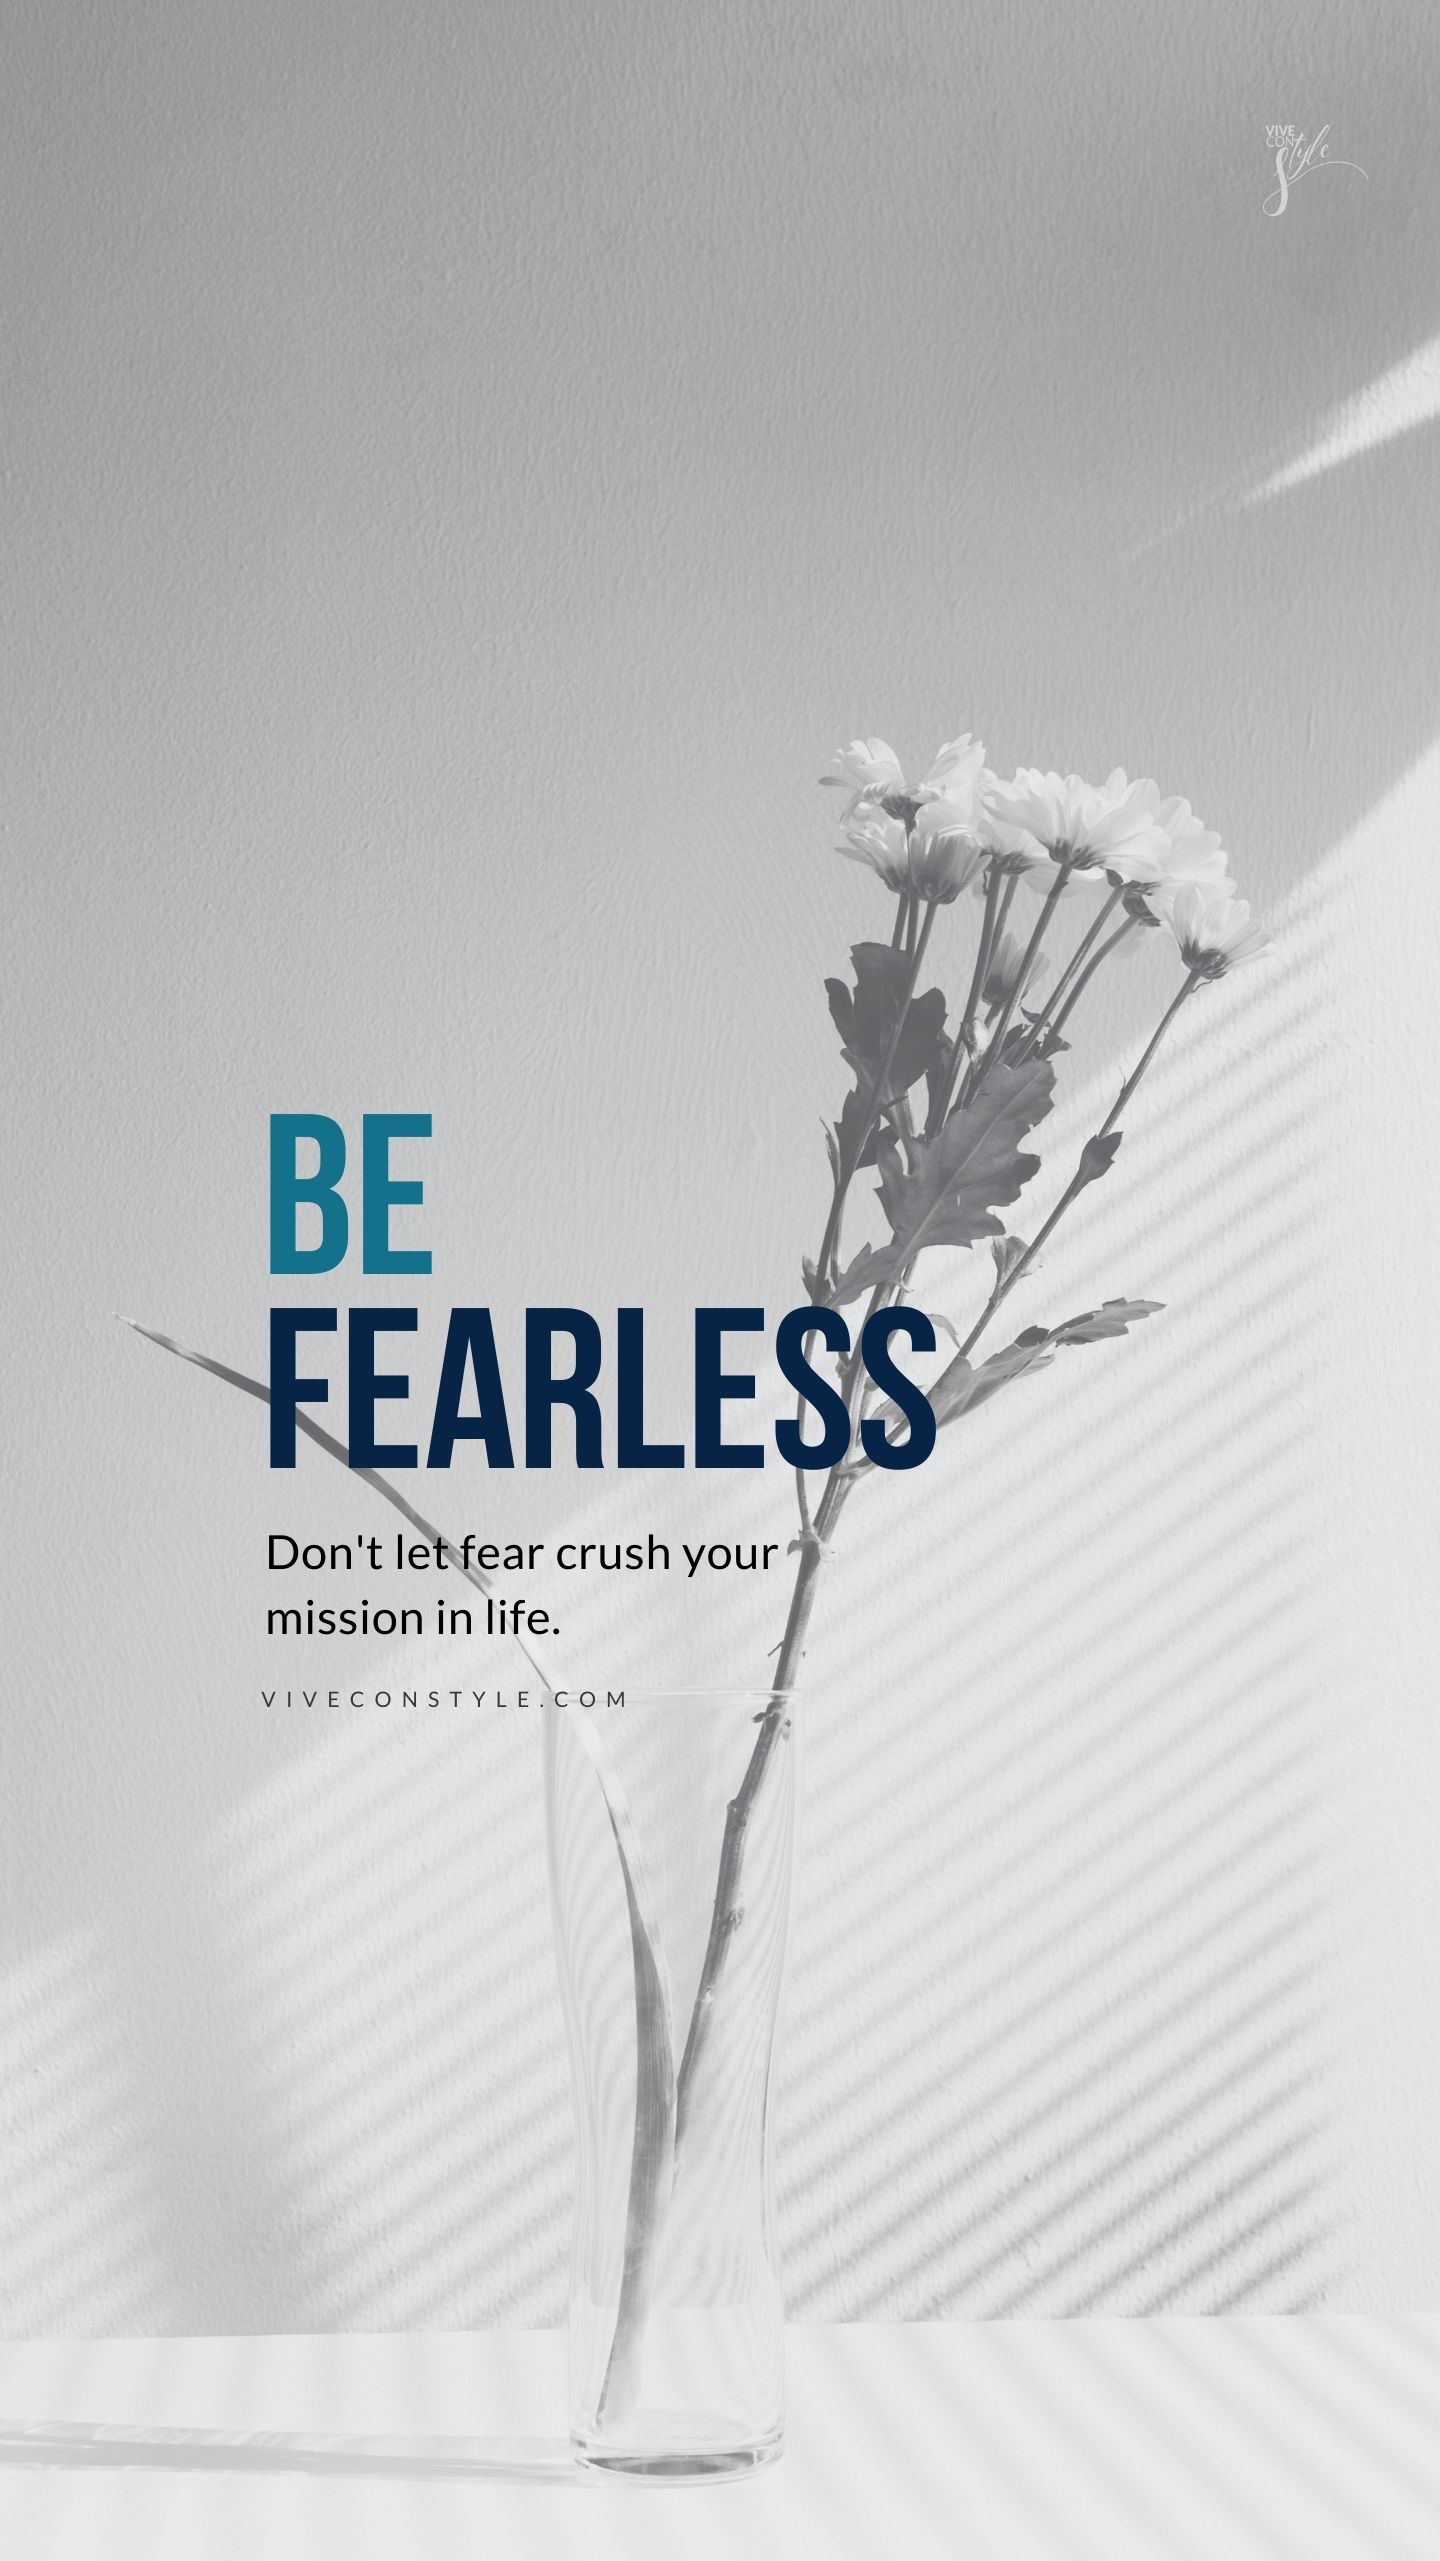 Be fearless mobile wallpaper